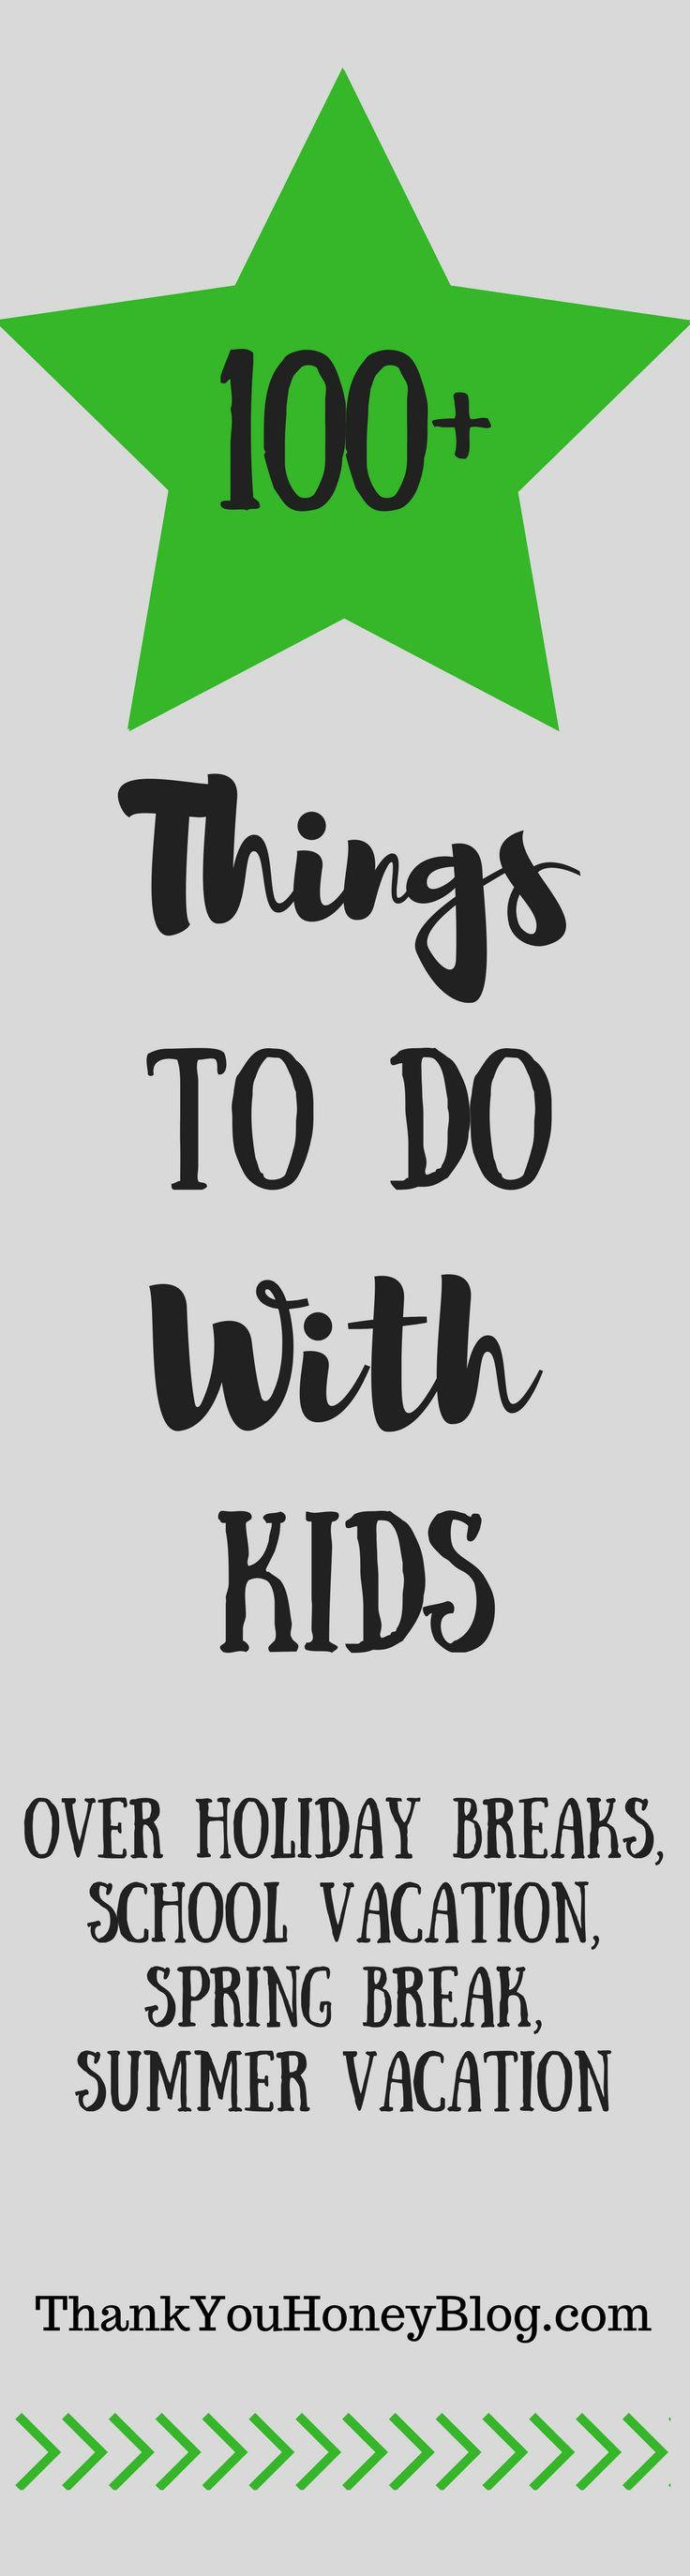 100+ Things To Do With Kids Over School Break, Click through & PIN IT! Follow Us on Pinterest + Subscribe to ThankYouHoneyBlog{dot}com, Spring Break, School Vacation, Staycation, School Break, Family Activities, Beat Boredom, Things to do, Fun, Kids, Craf